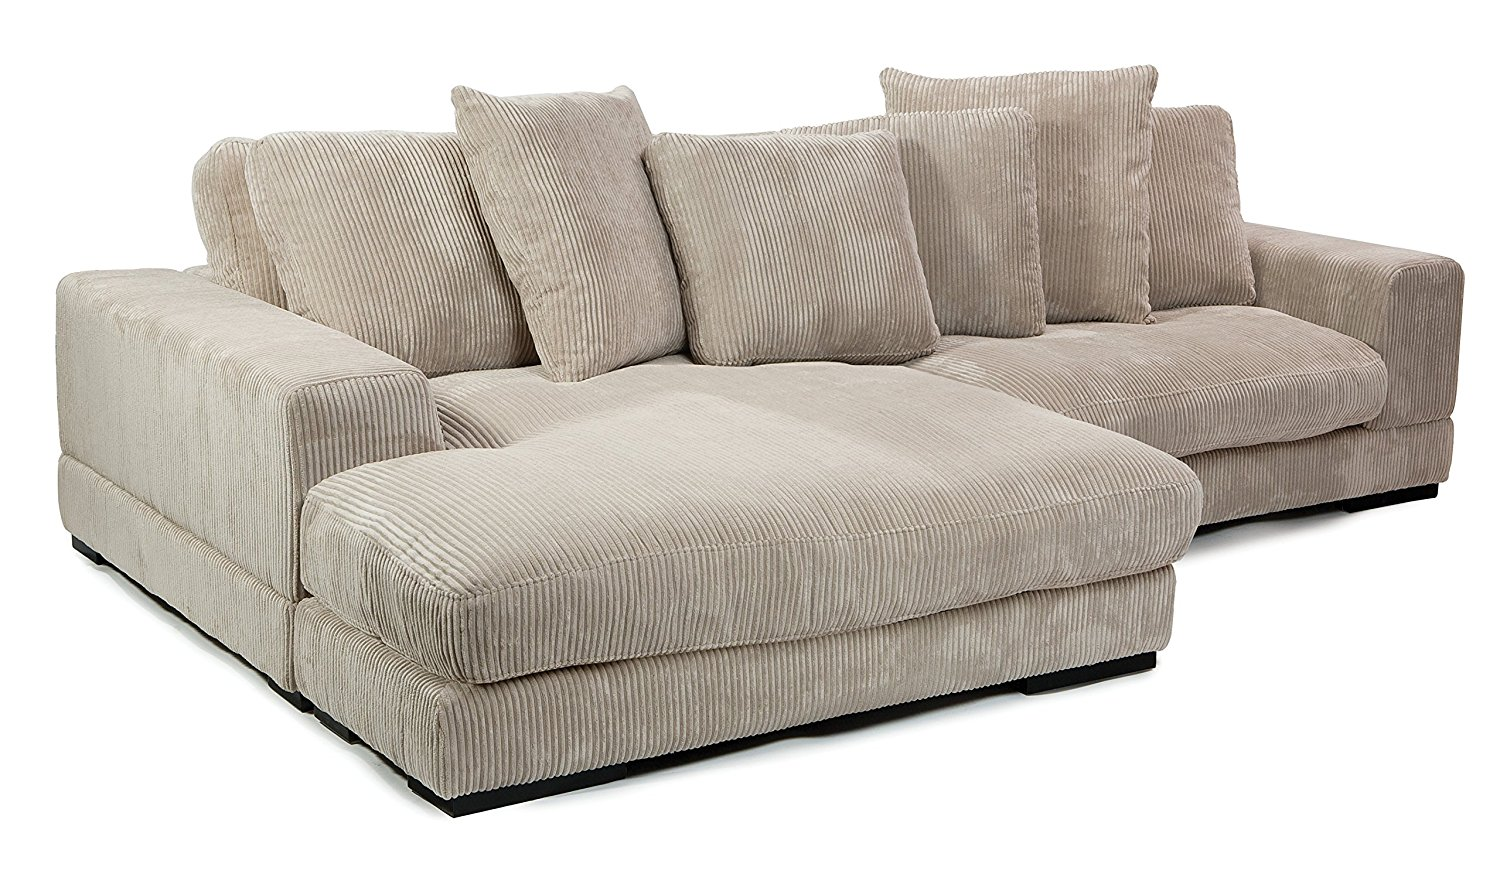 Most Comfortable Sectional Couches Decor Ideasdecor Ideas